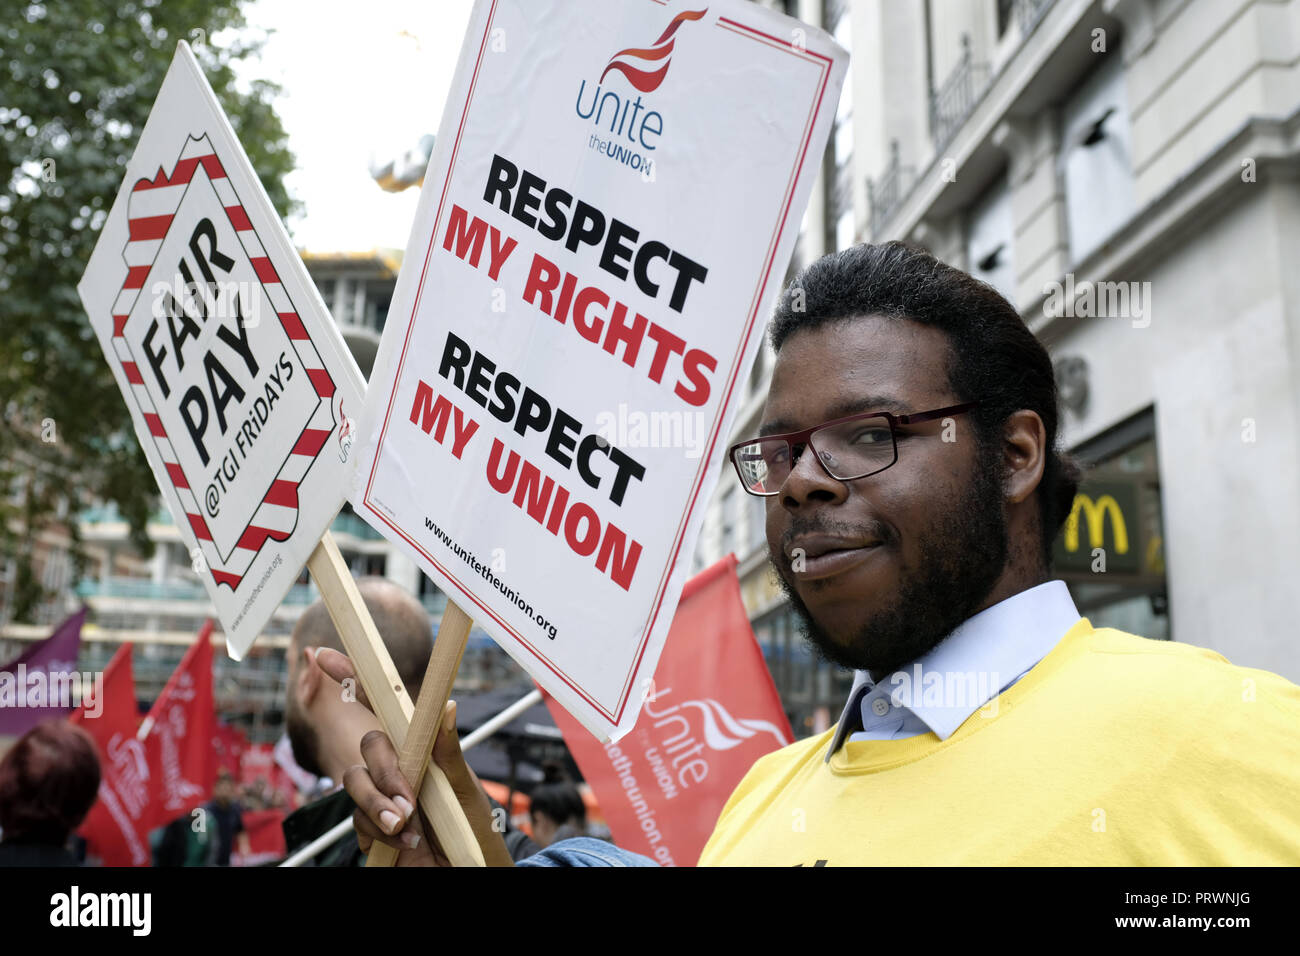 London, Greater London, UK. 5th Oct, 2018. A man seen standing next to a poster saying Respect my rights, respect my Union and Fair pay during the protest.Wetherspoons, TGI Fridays, and McDonald's workers rally together in London to demand better working conditions and a fair pay in the hospitality industry. Credit: Andres Pantoja/SOPA Images/ZUMA Wire/Alamy Live News - Stock Image